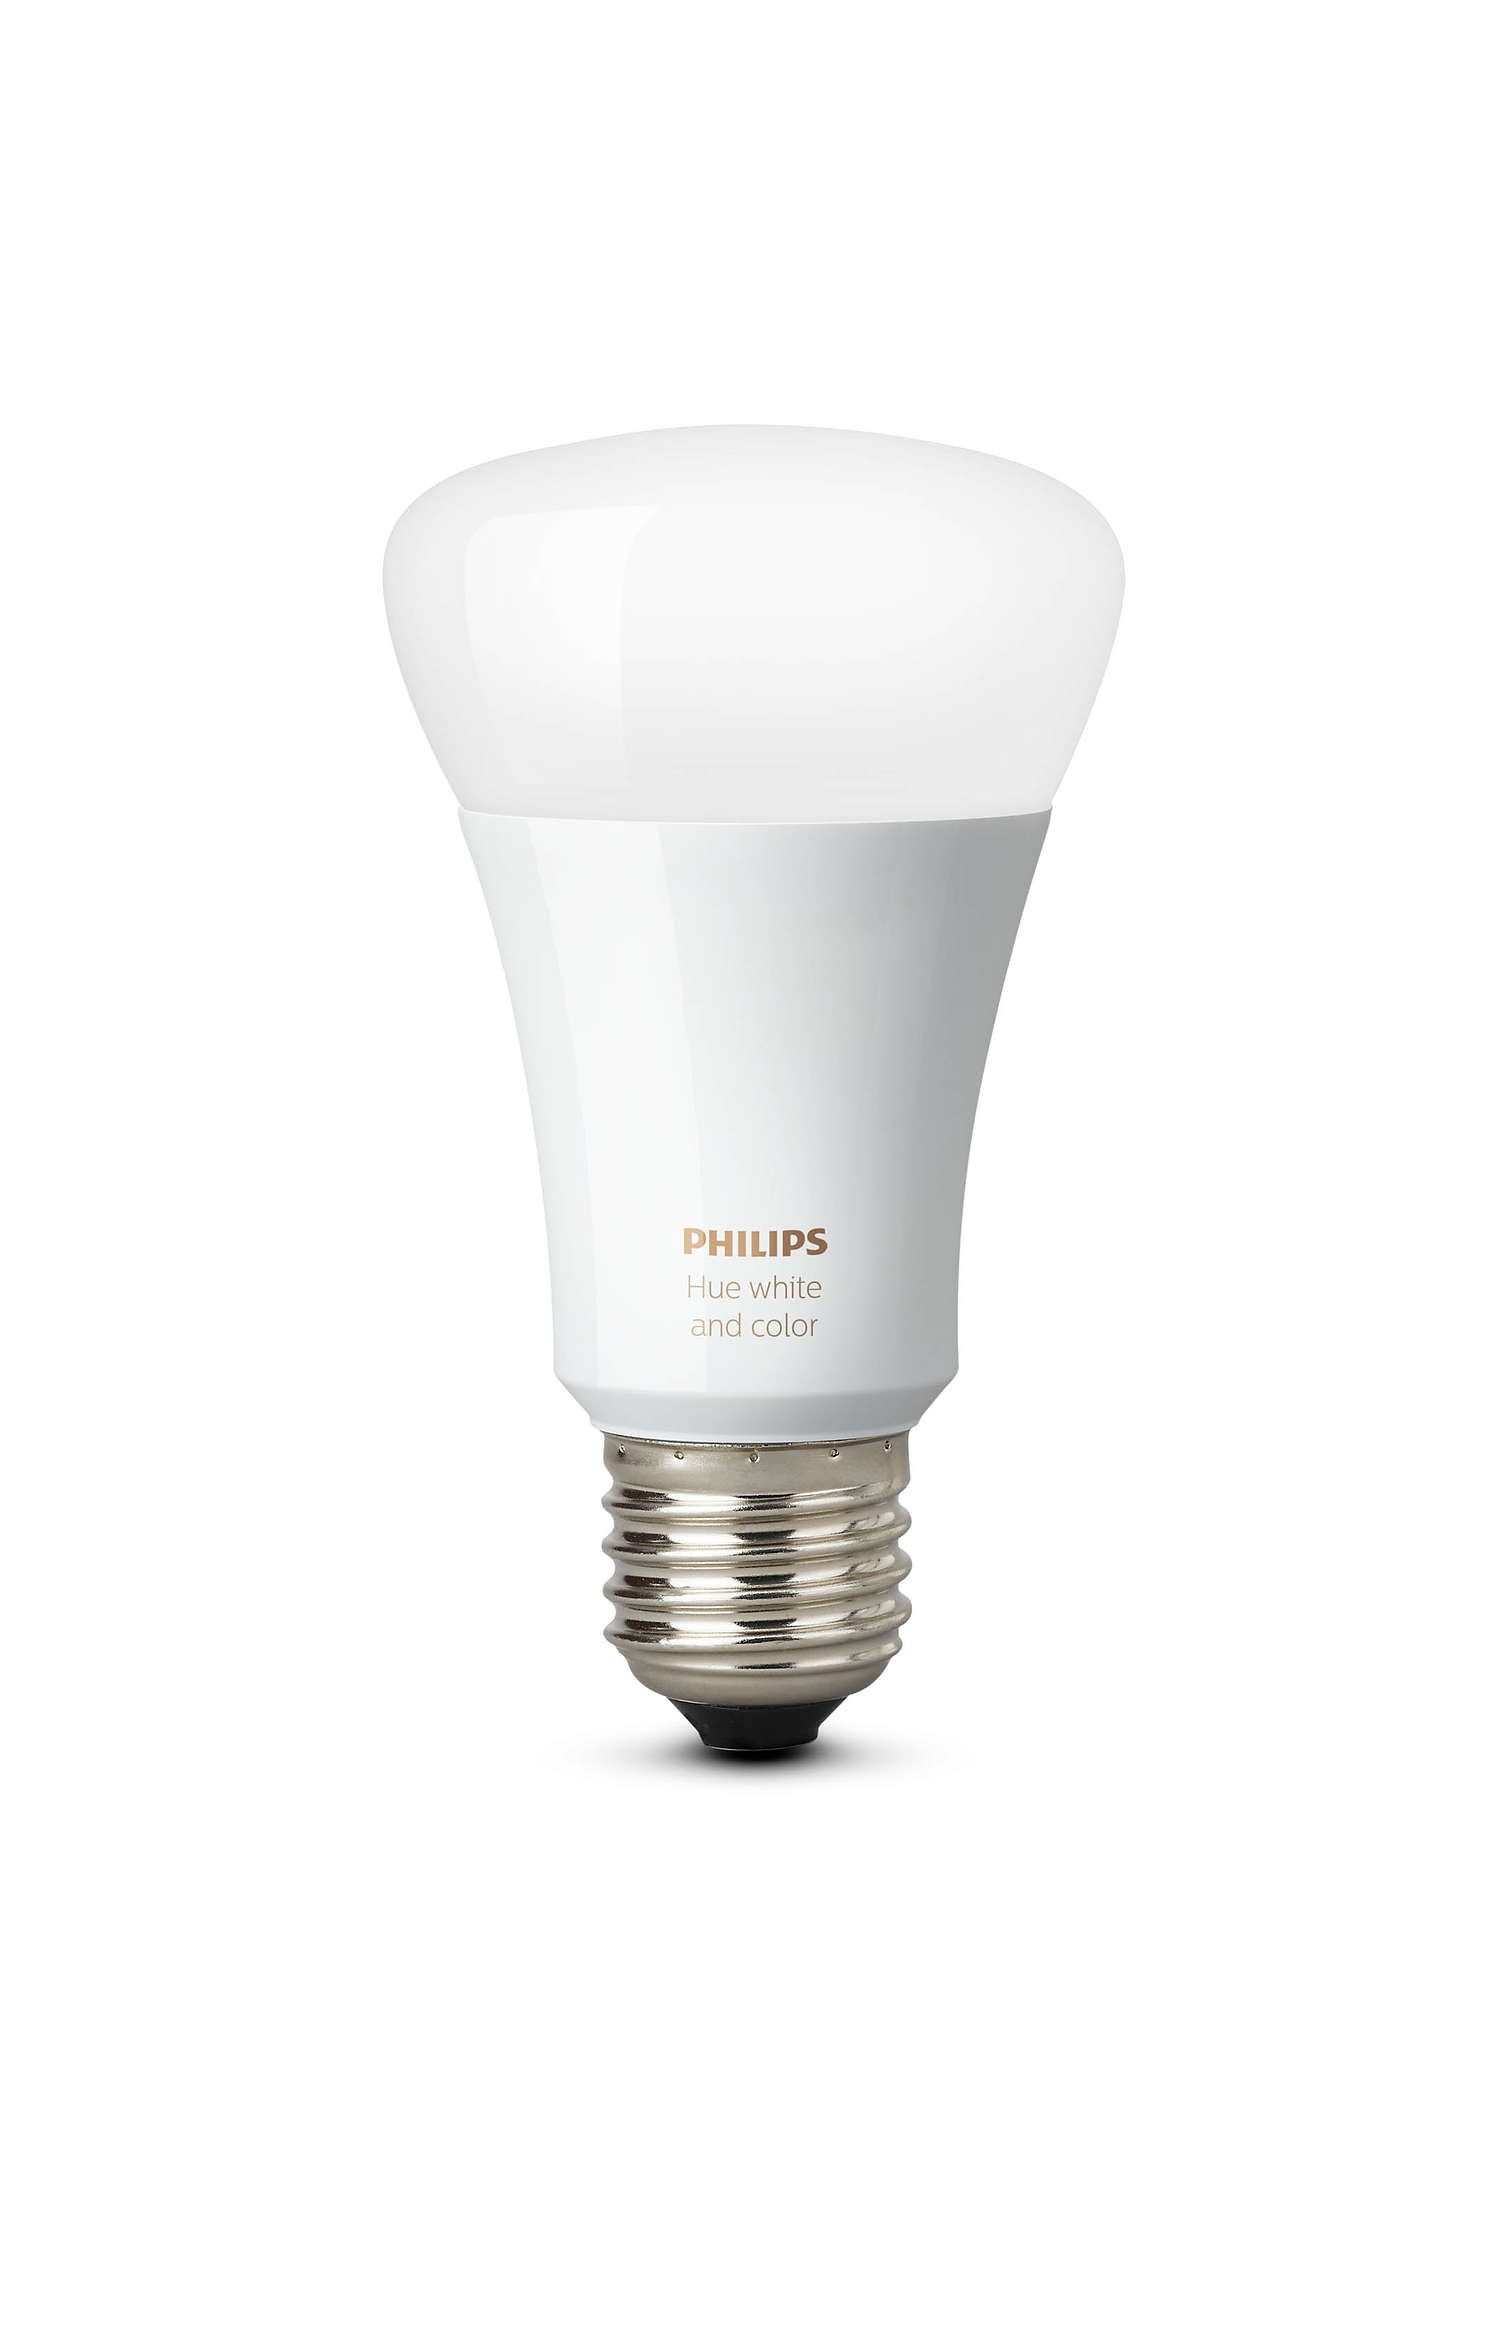 Philips Massive Lighting - 59298400 - HUE